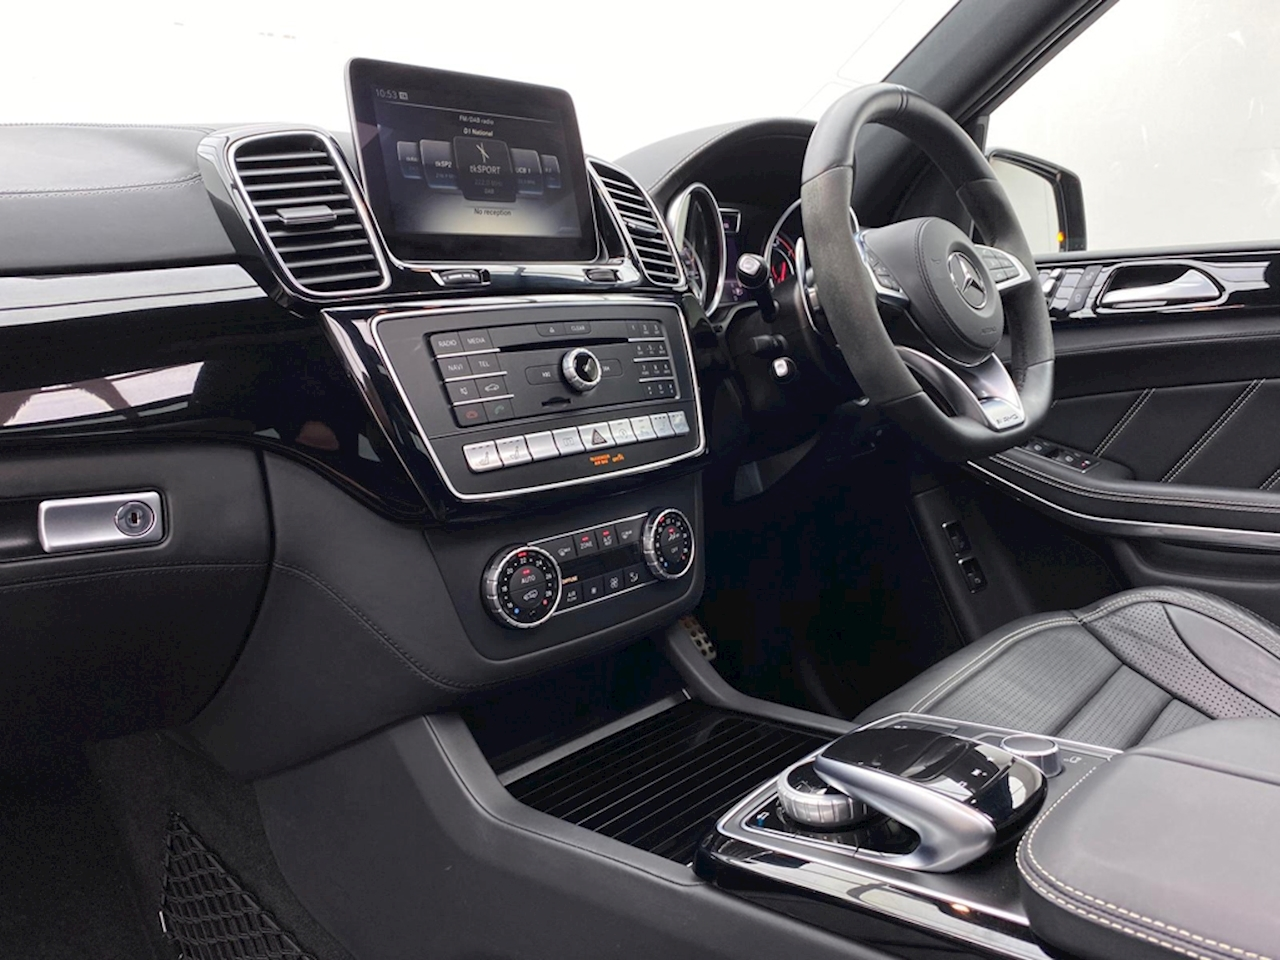 Mercedes-Benz Gls Amg Gls 63 4Matic Estate 5.5 Automatic Petrol